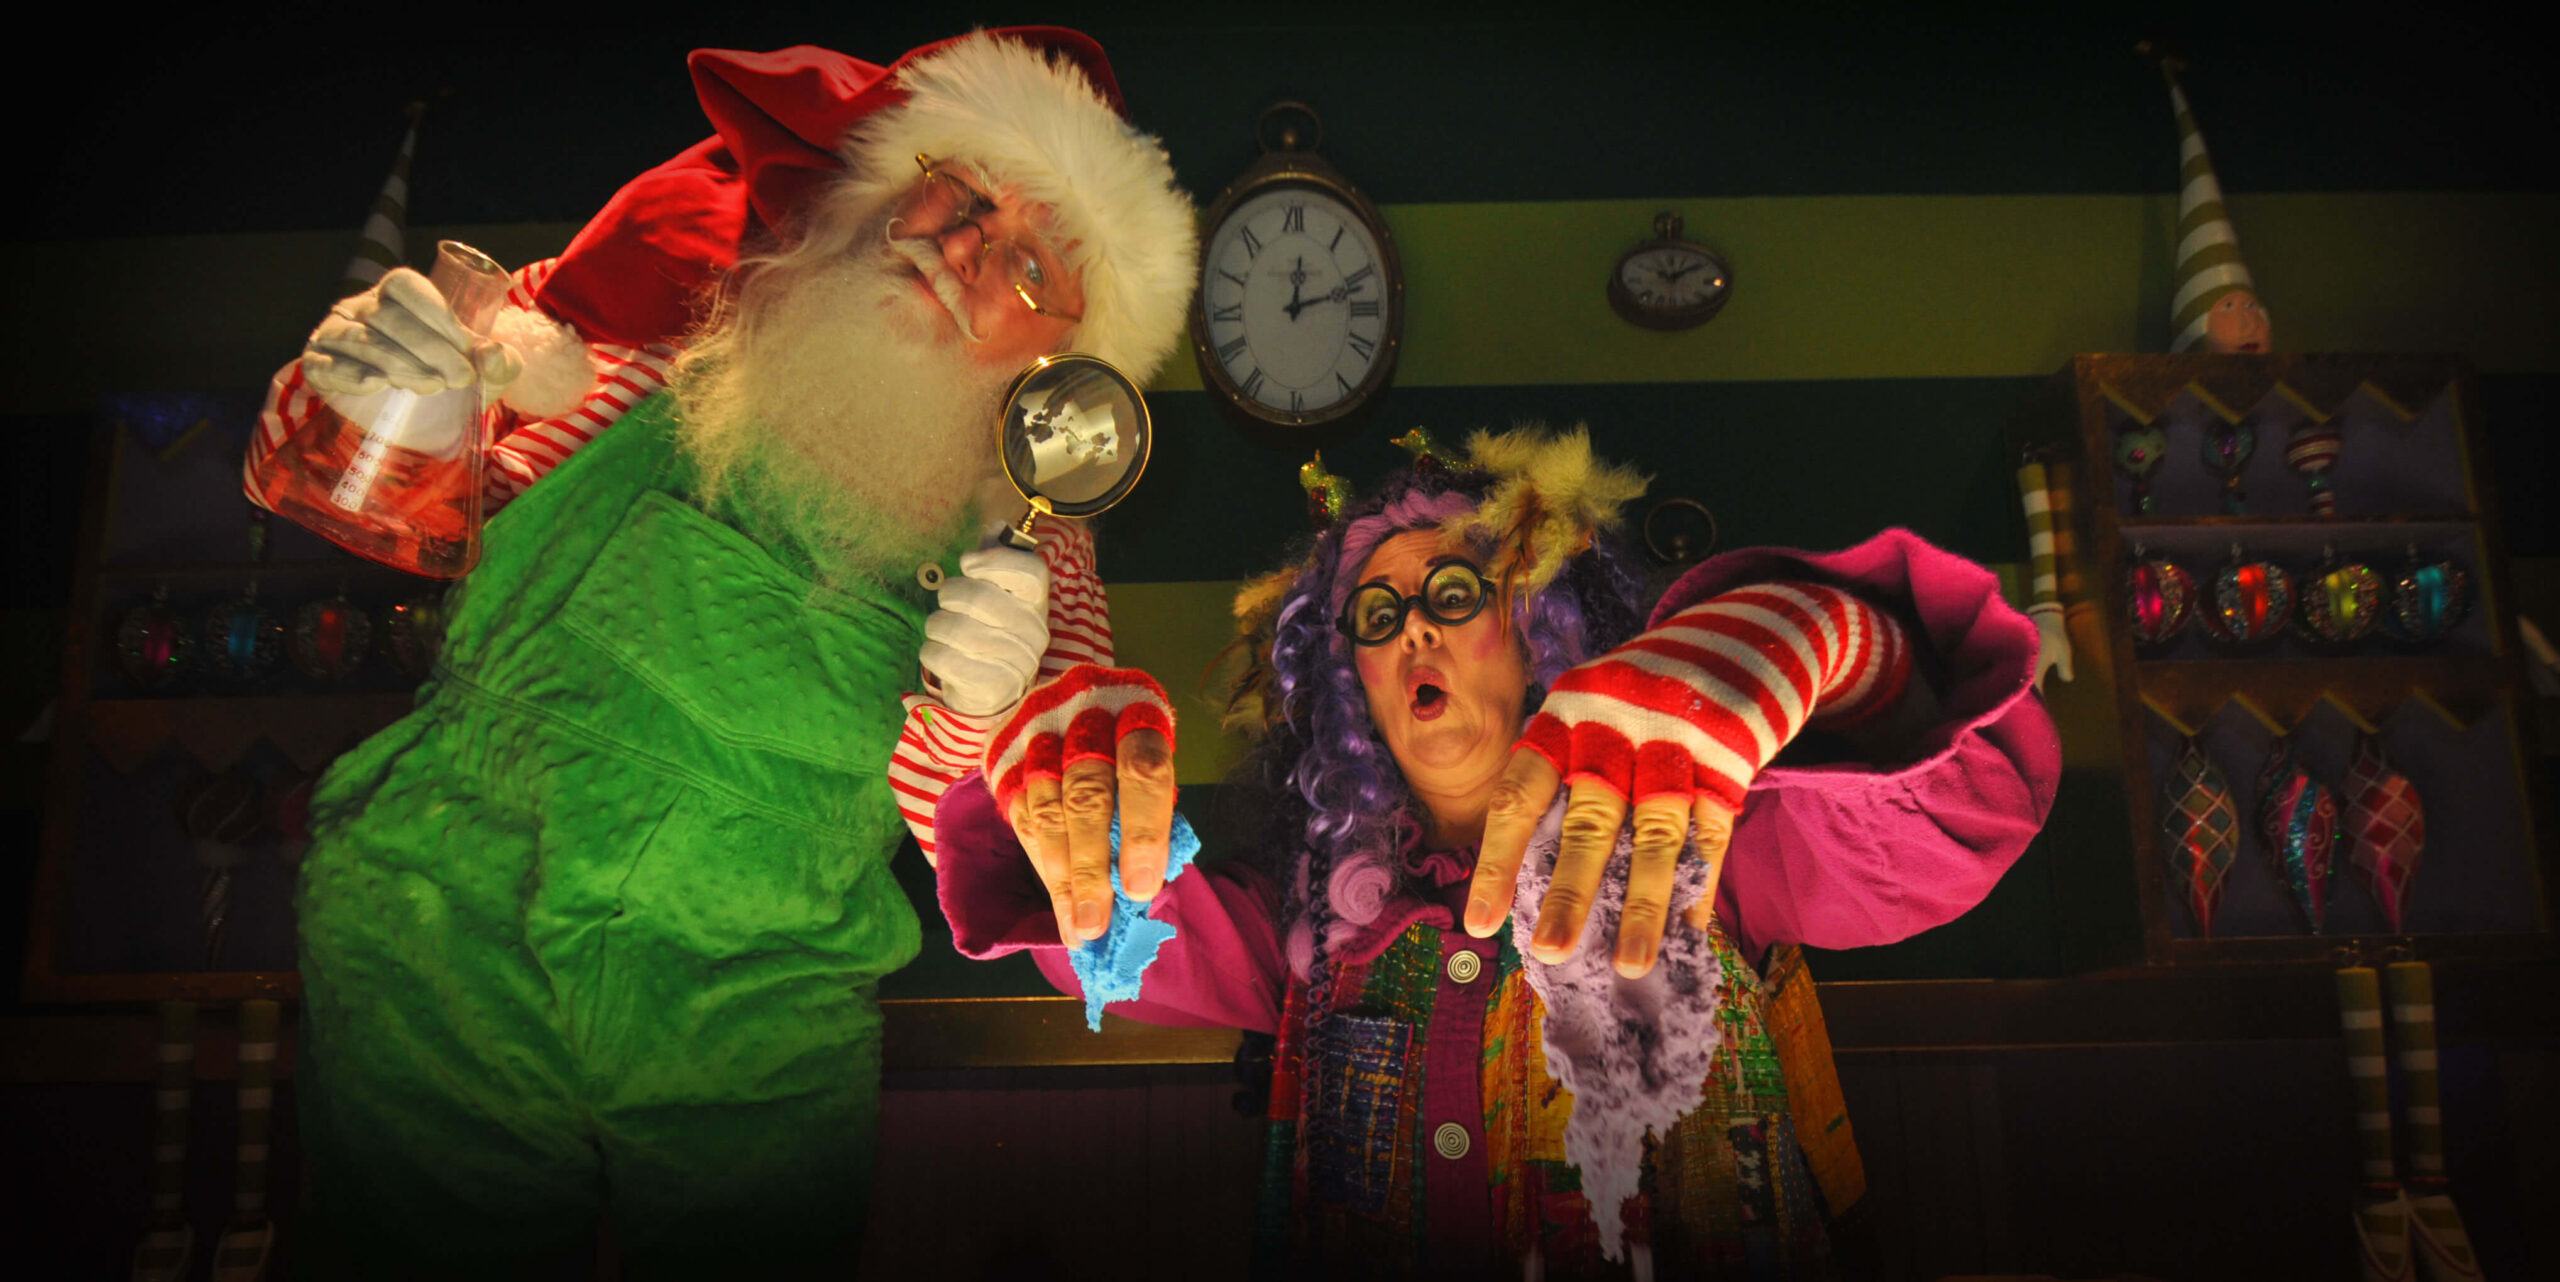 See Santa Claus in Cleveland, Ohio at Mr. Kringle's Inventionasium Experience in Tower City